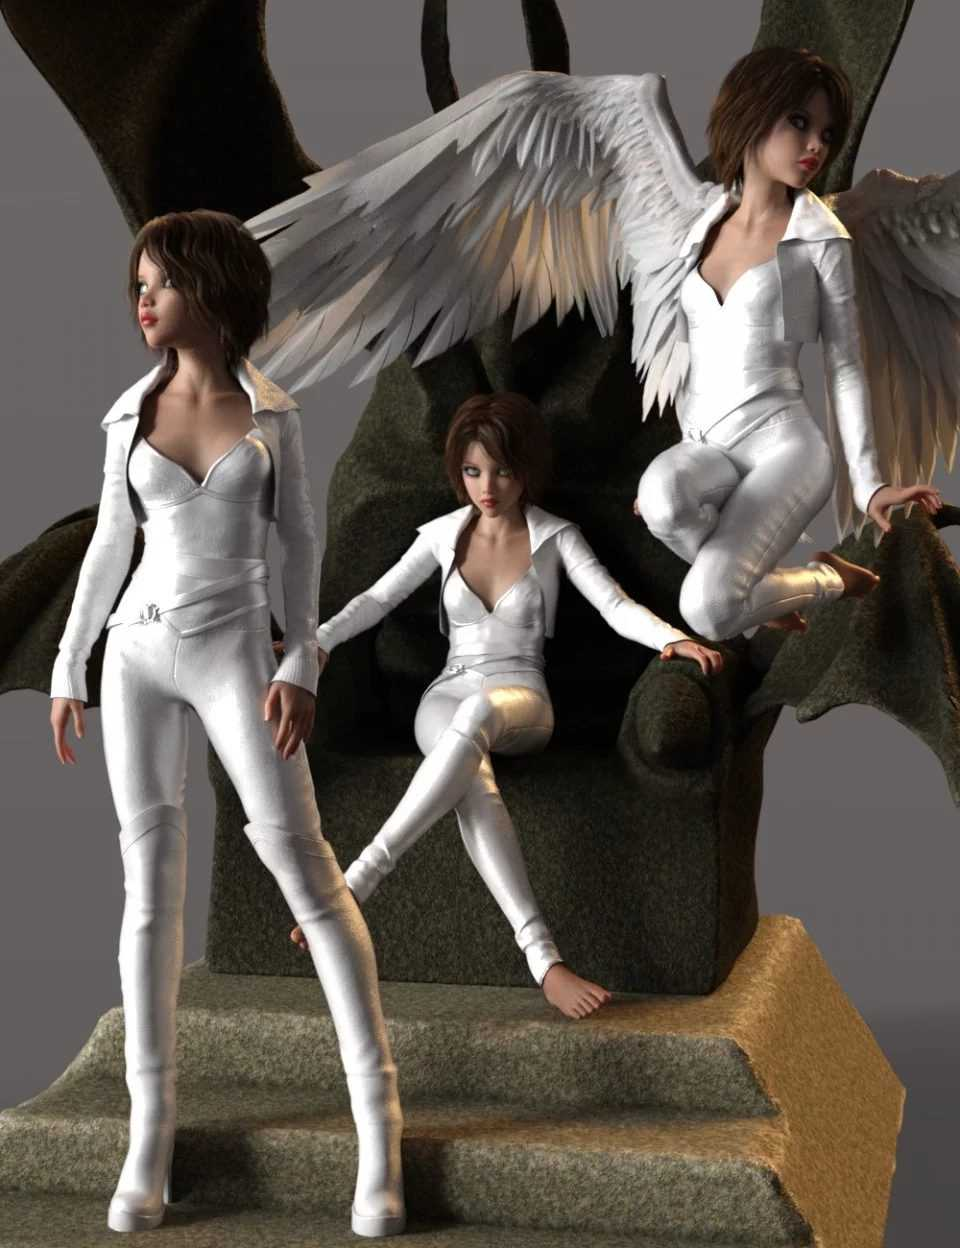 Fallen Angel Poses for Rynne 8